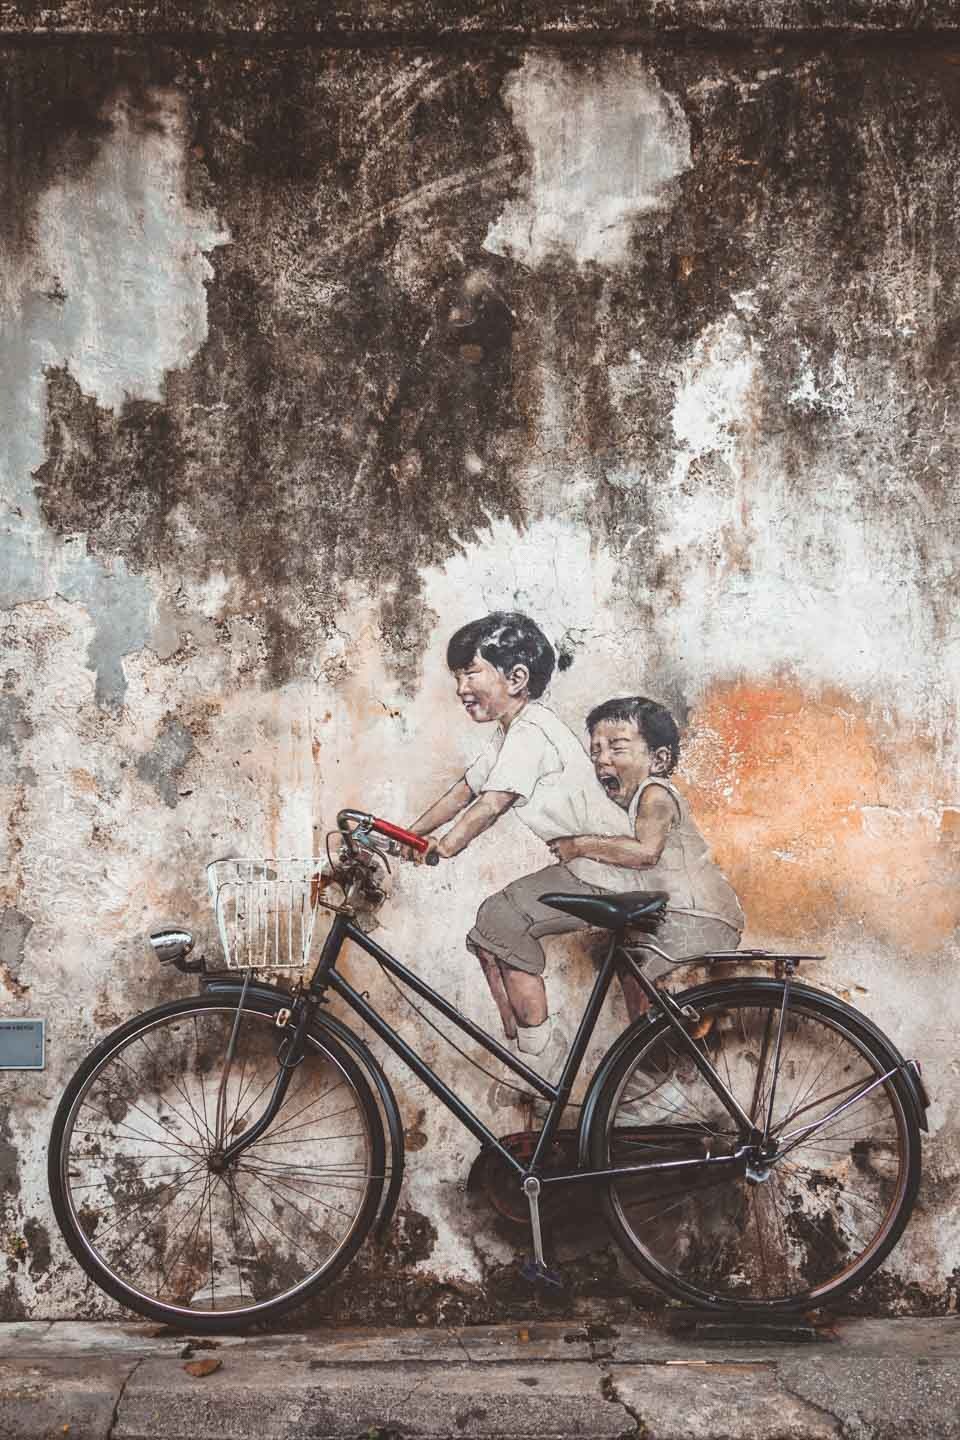 Children on Bicycle, Ernest Zacharevic, Penang Street Art, Georgetown